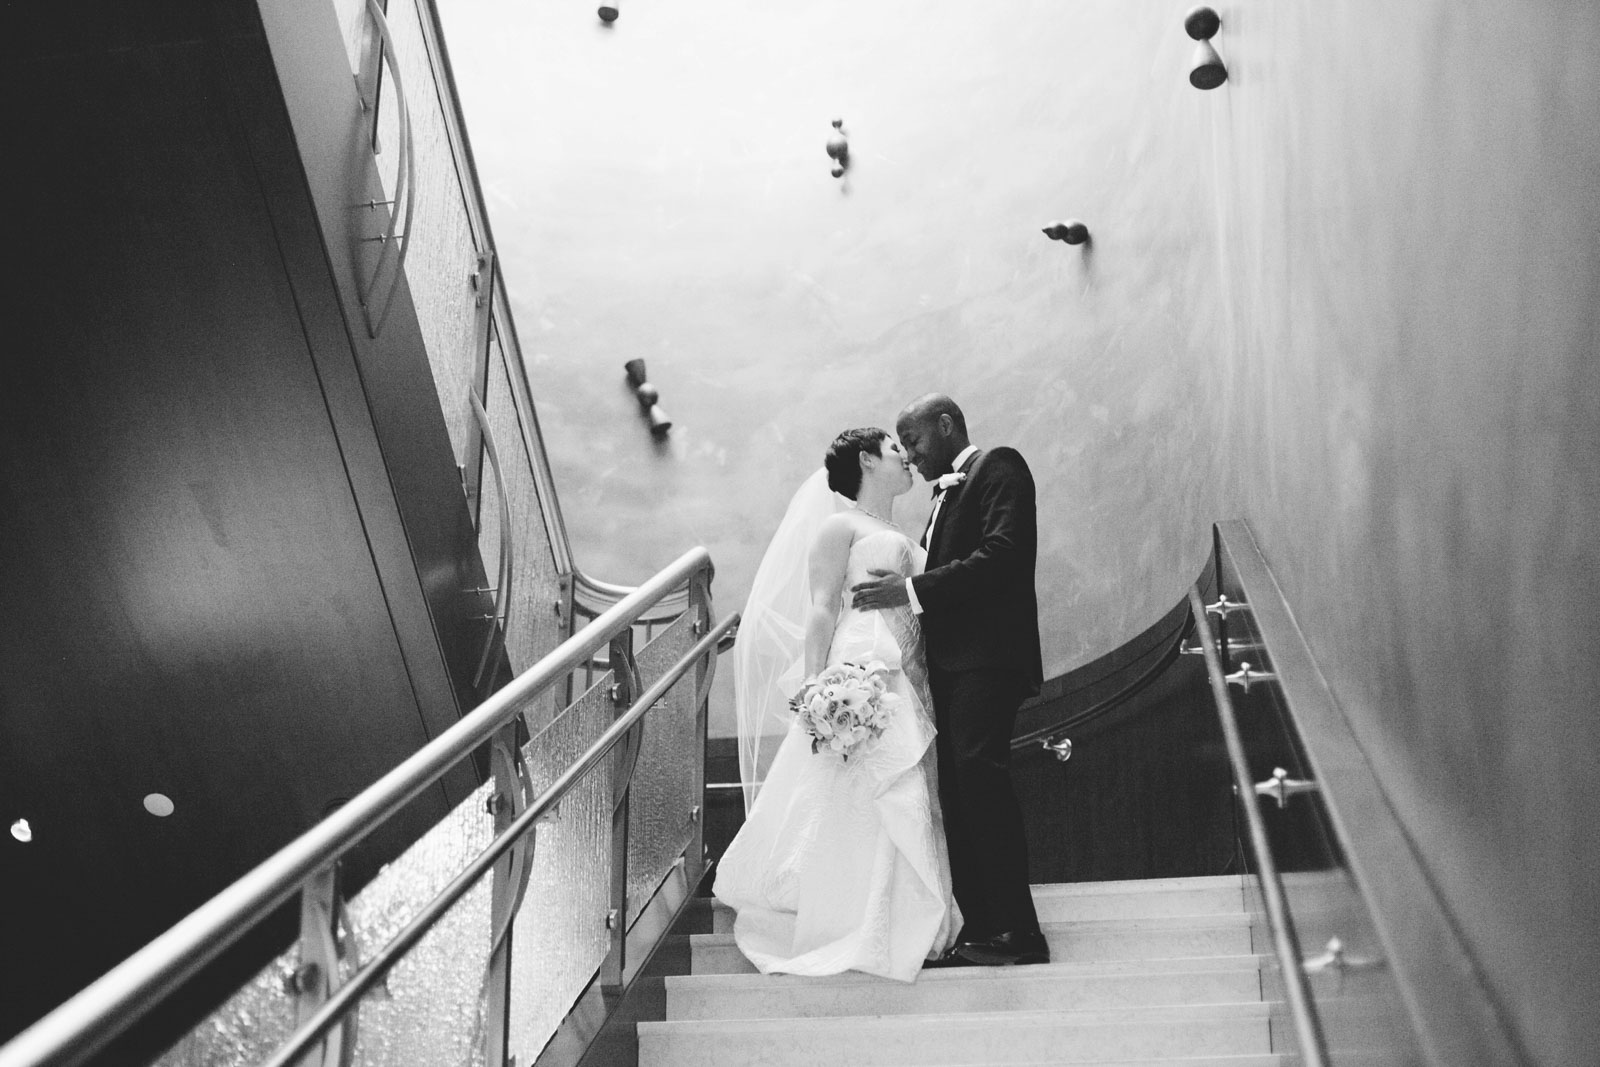 black and white intimate portrait of bride and groom holding each other close during first look